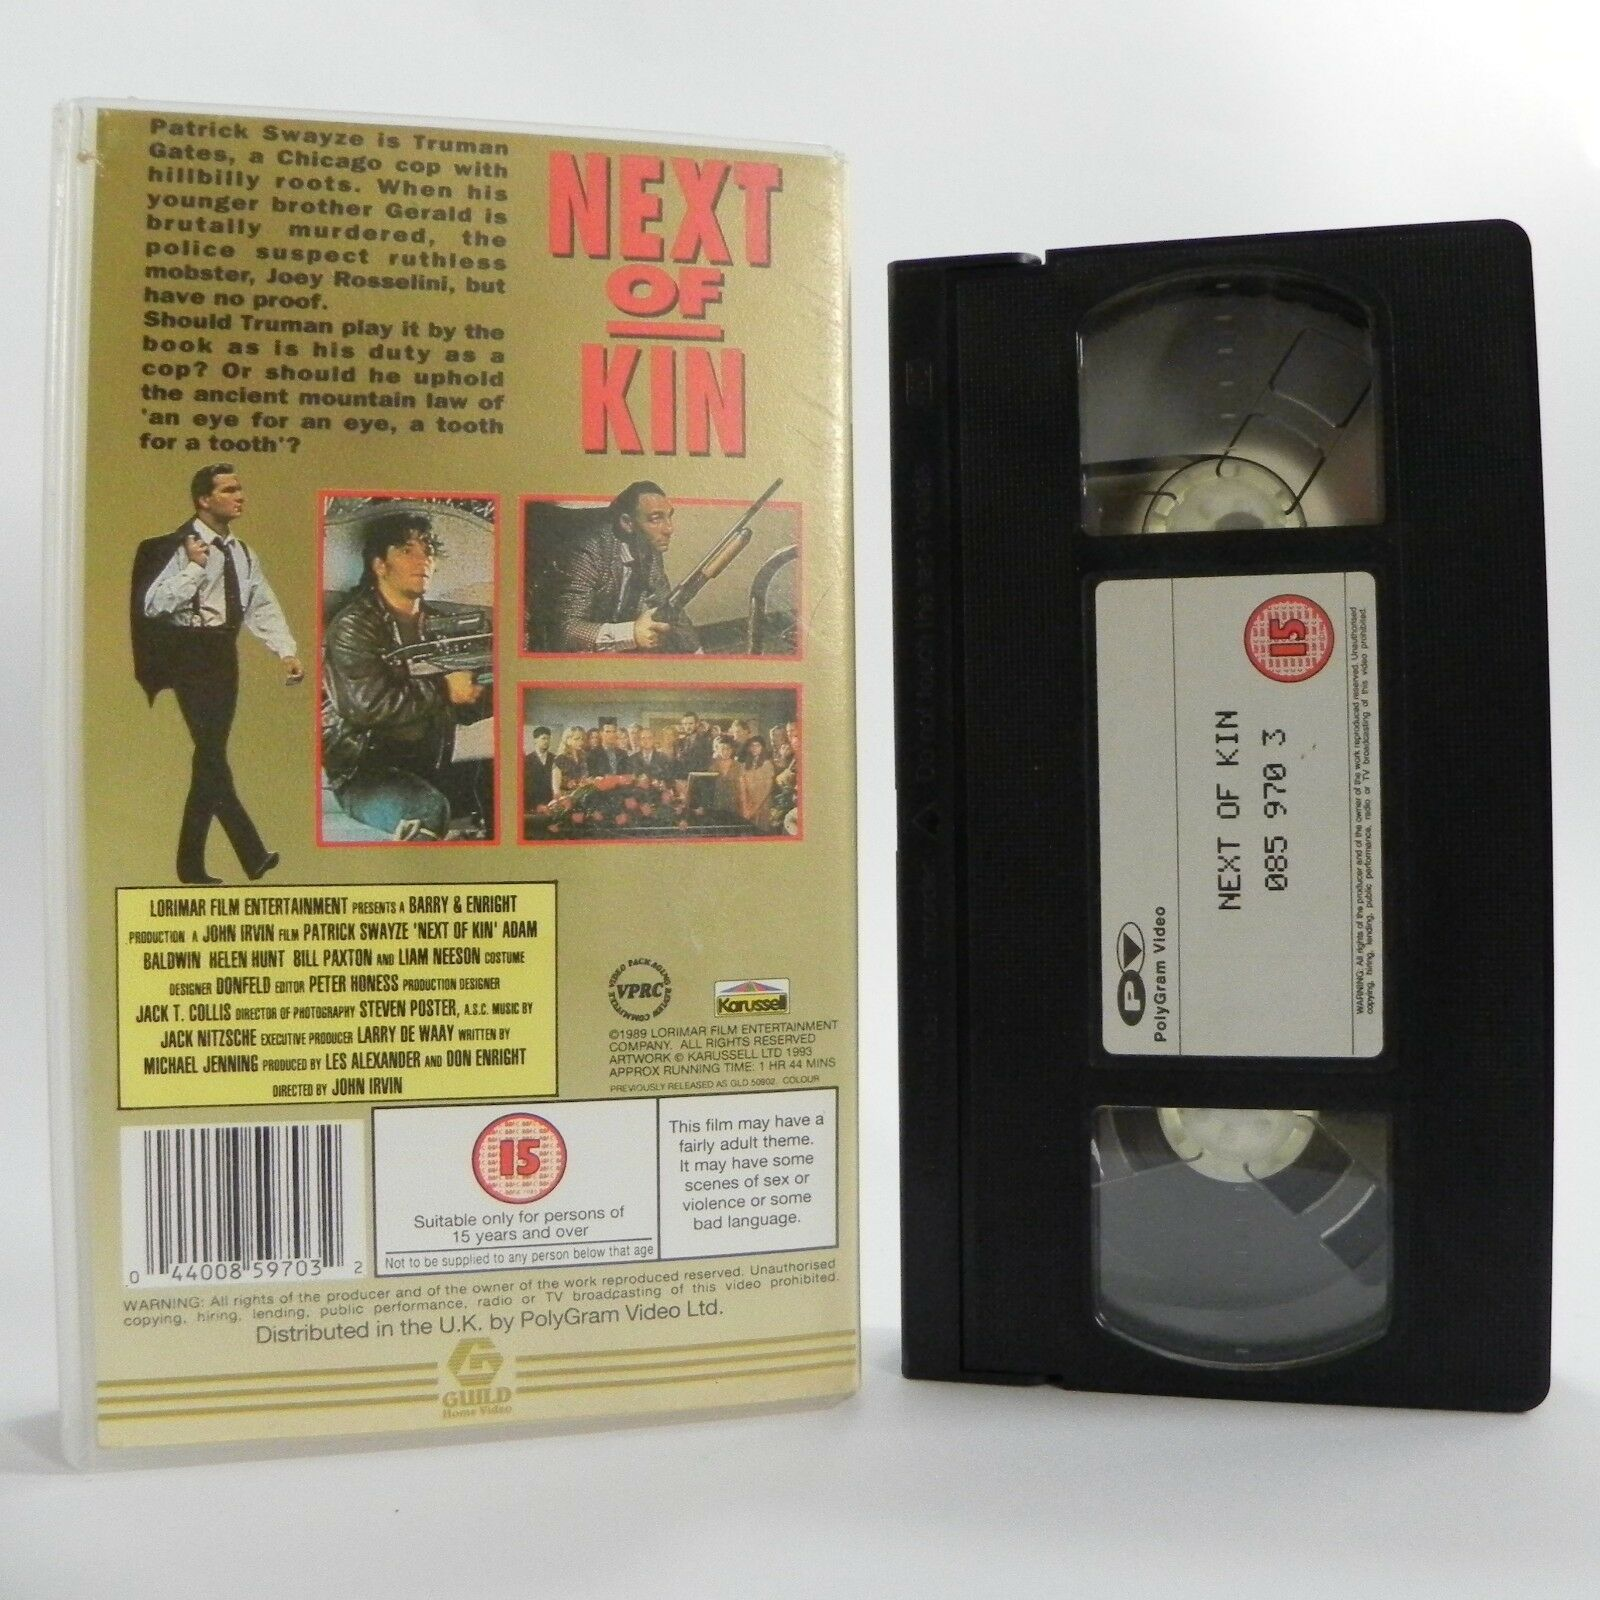 Next Of Kin: (1989) Guild Home - Action - Patrick Swayze/Helen Hunt - Pal VHS